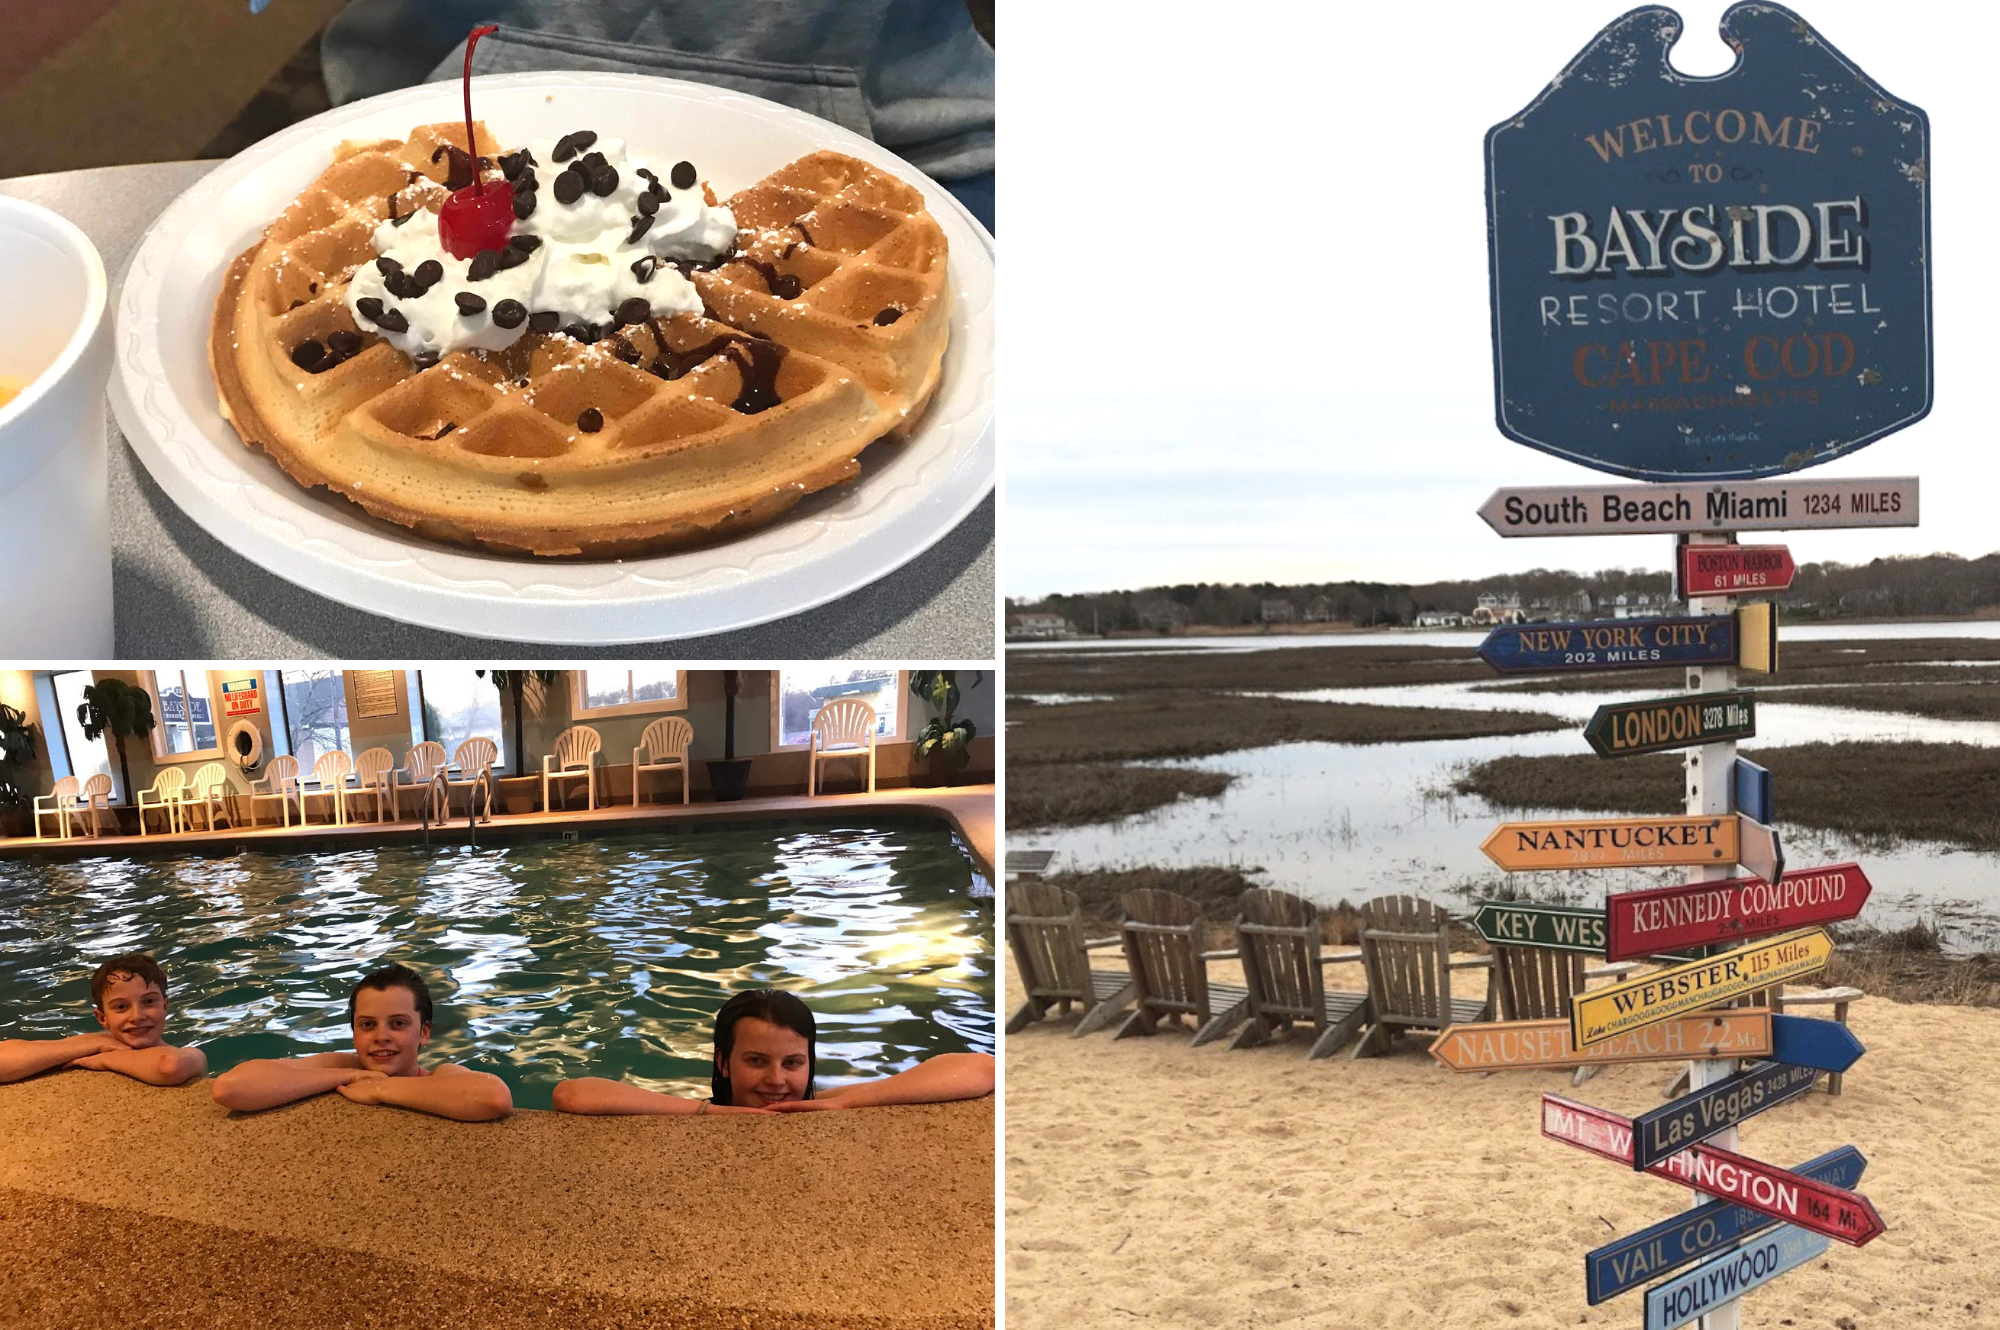 Top family friendly things to do in Cape Cod - Top things to do with kids in Cape Cod - Bayside resort hotel outside